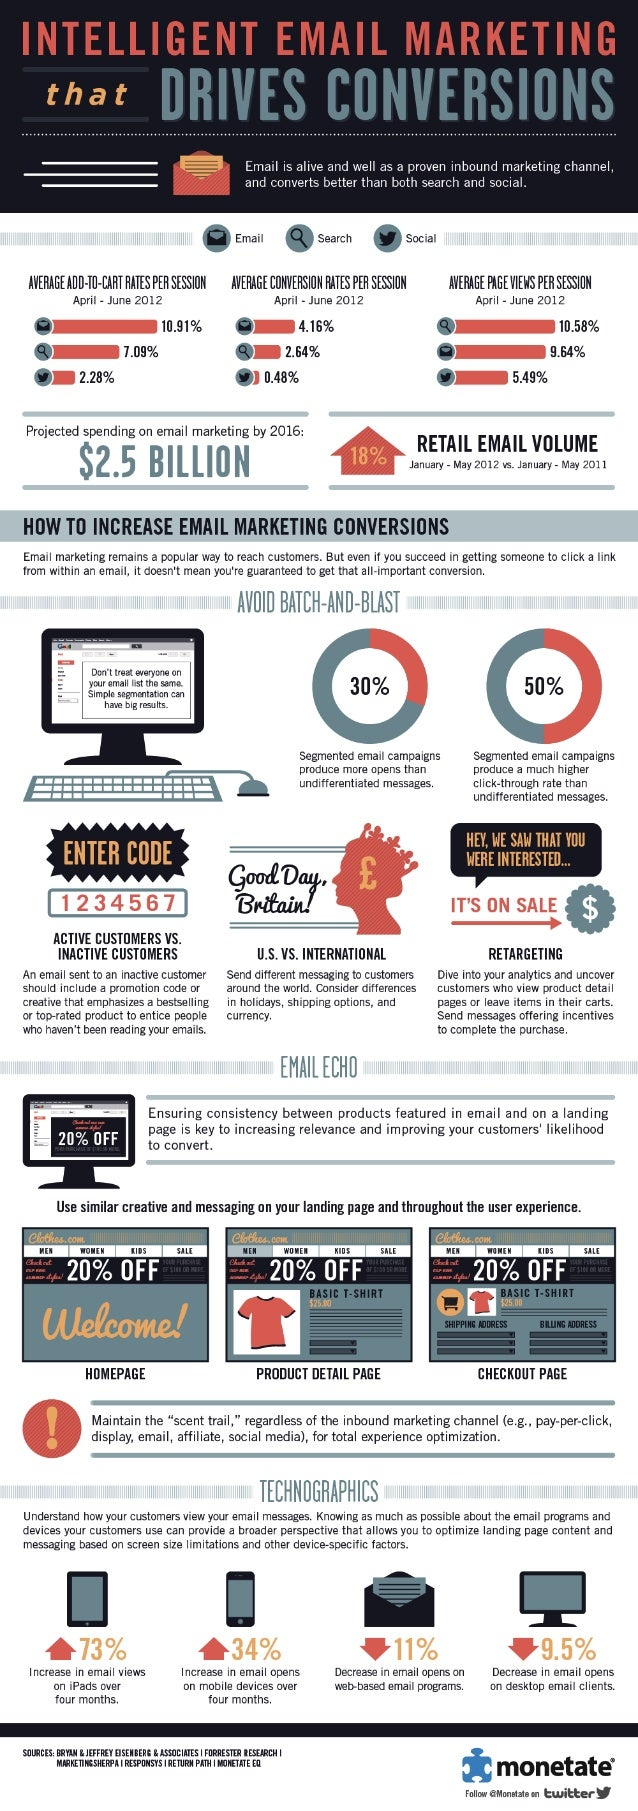 Intelligent Email Marketing That Drives Conversions